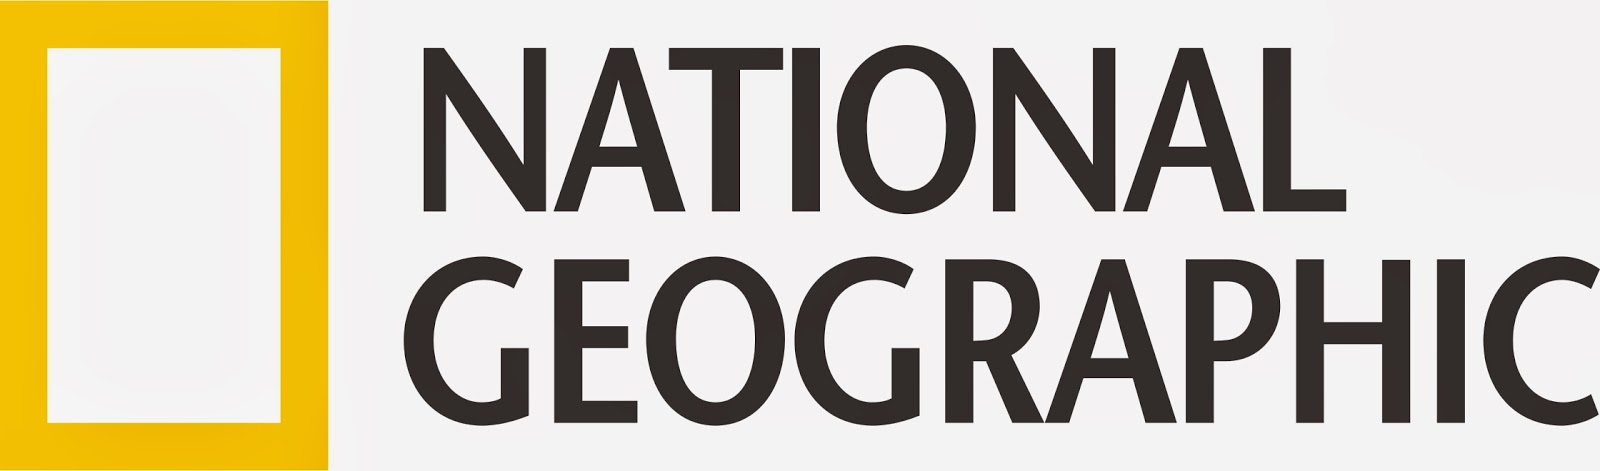 National Geographic Logo - National Geographic Vector, Transparent background PNG HD thumbnail